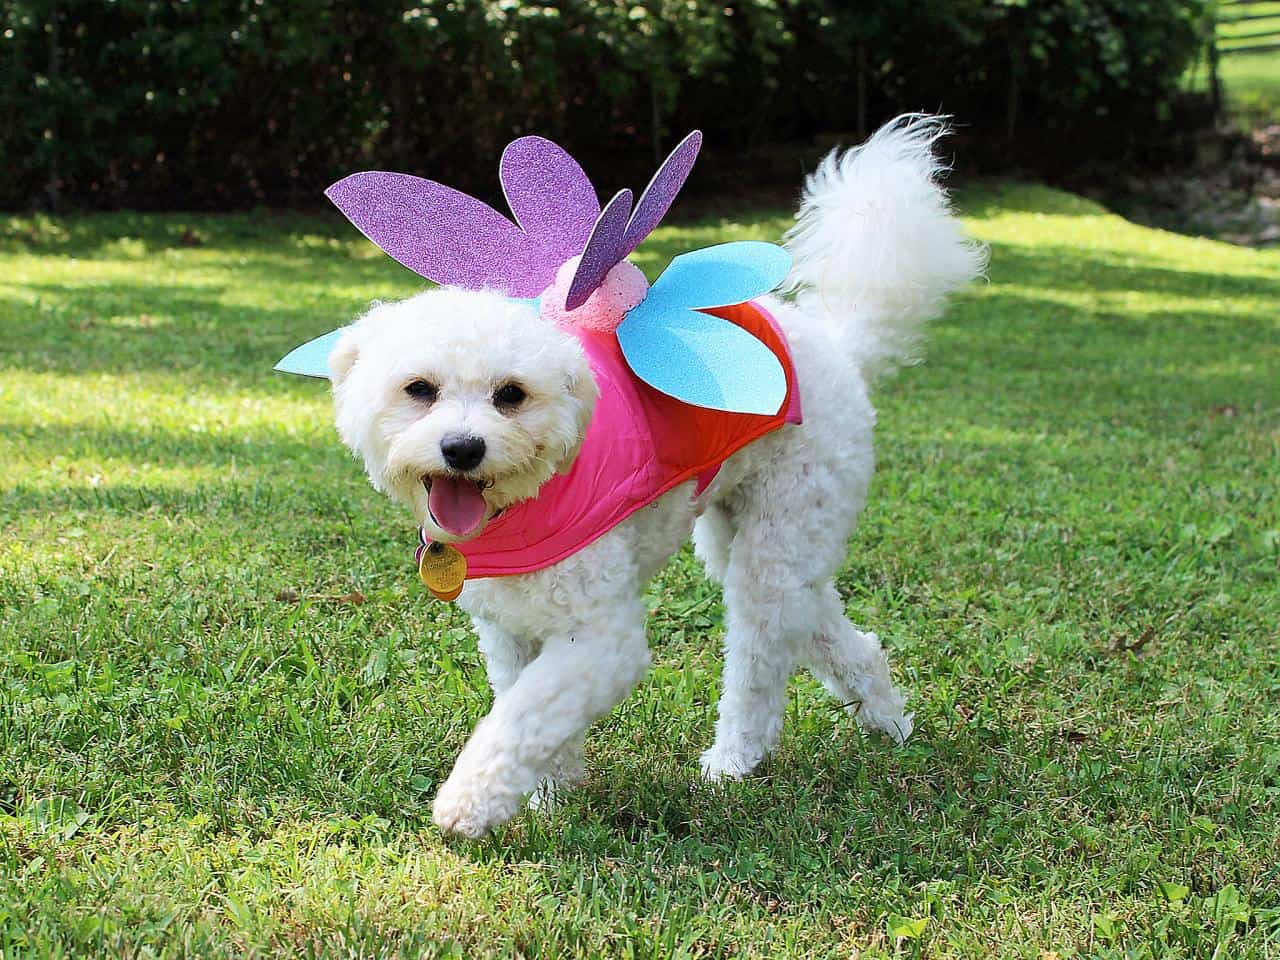 Doggie fairy wings